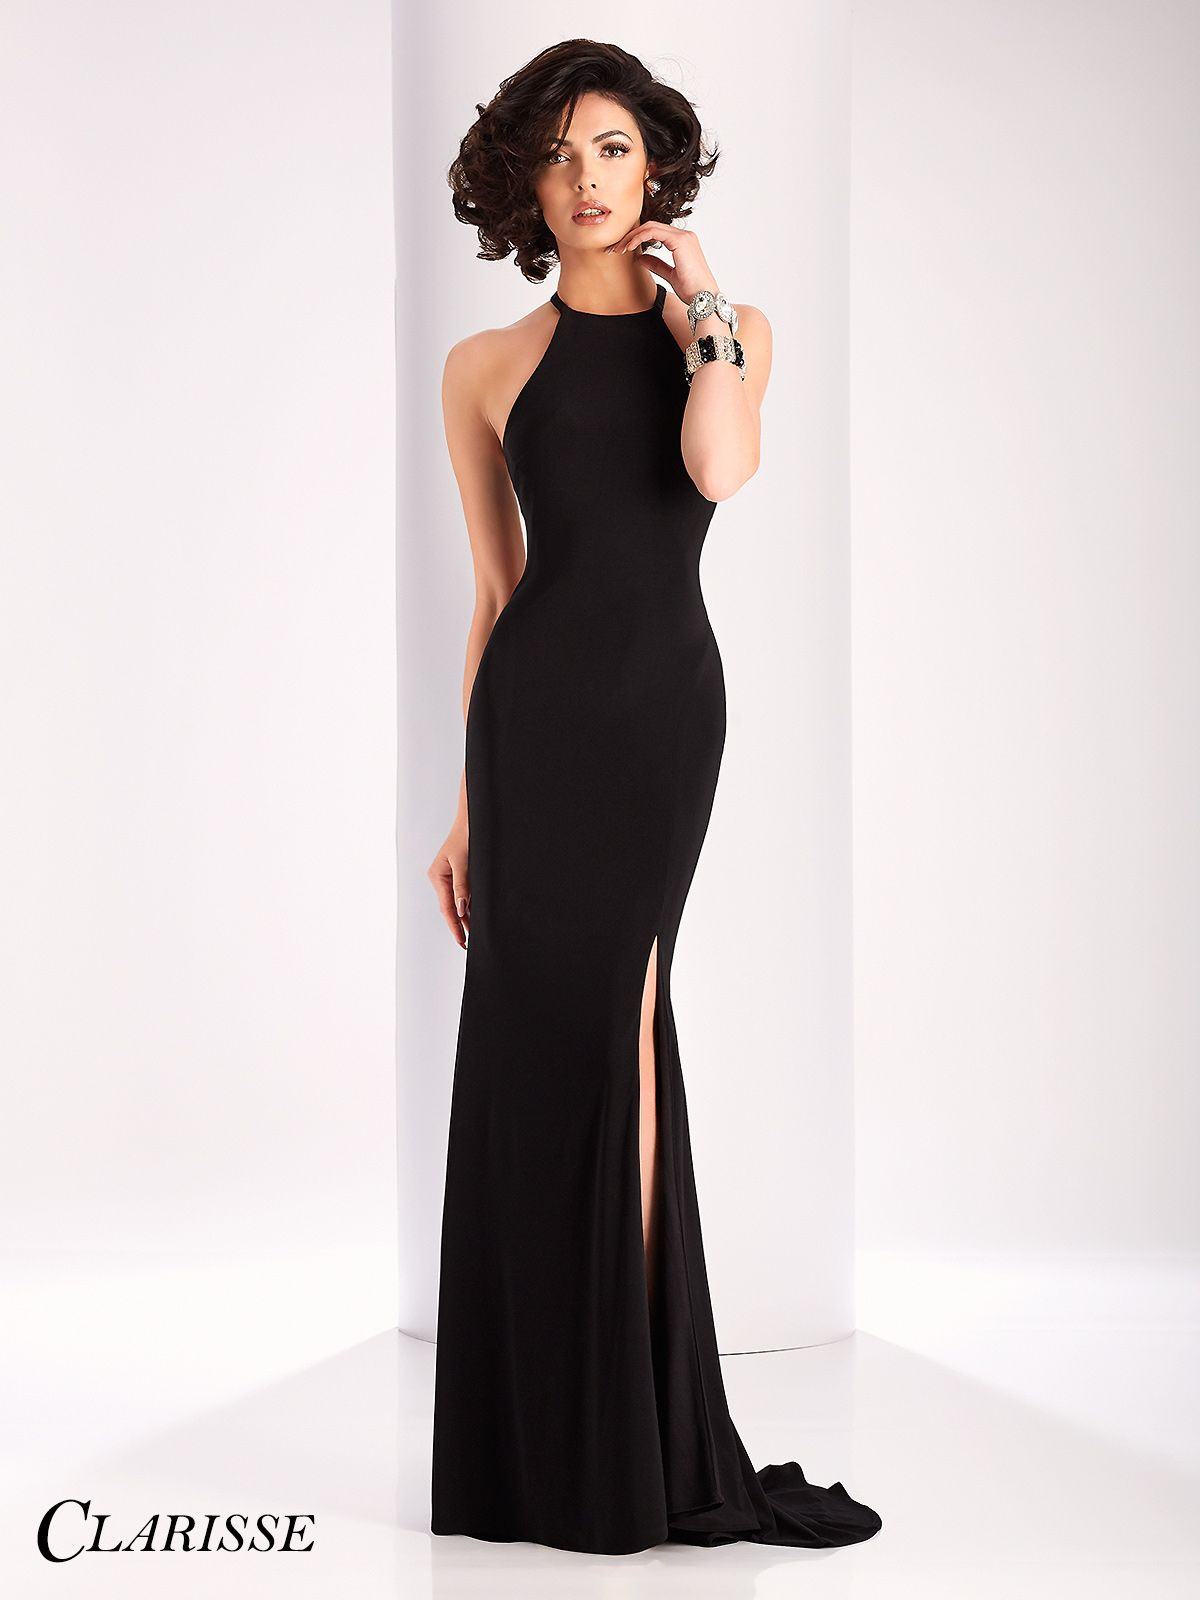 Short little black party dress with back cut outs - Clarisse Chic Cut Out Back Prom Dress 3106